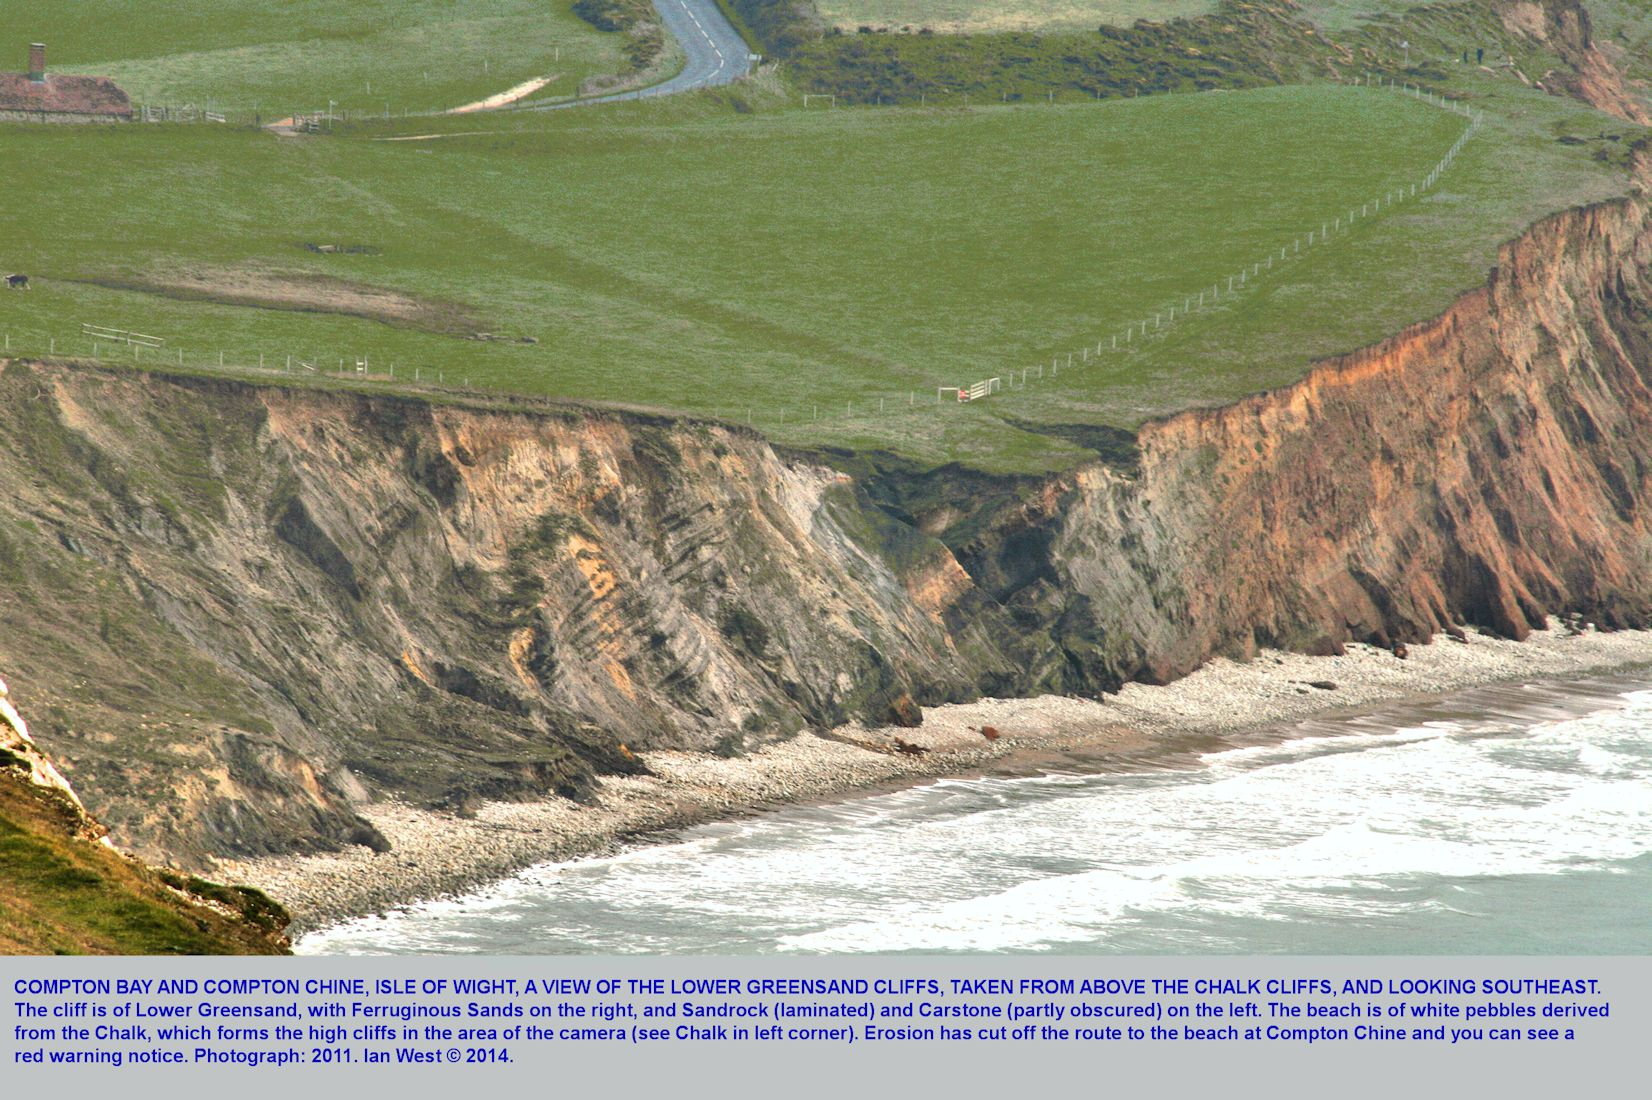 A distant view of the Lower Greensand cliffs at Compton Chine, Compton Bay, Isle of Wight, as seen from above the Chalk cliffs and looking southeast